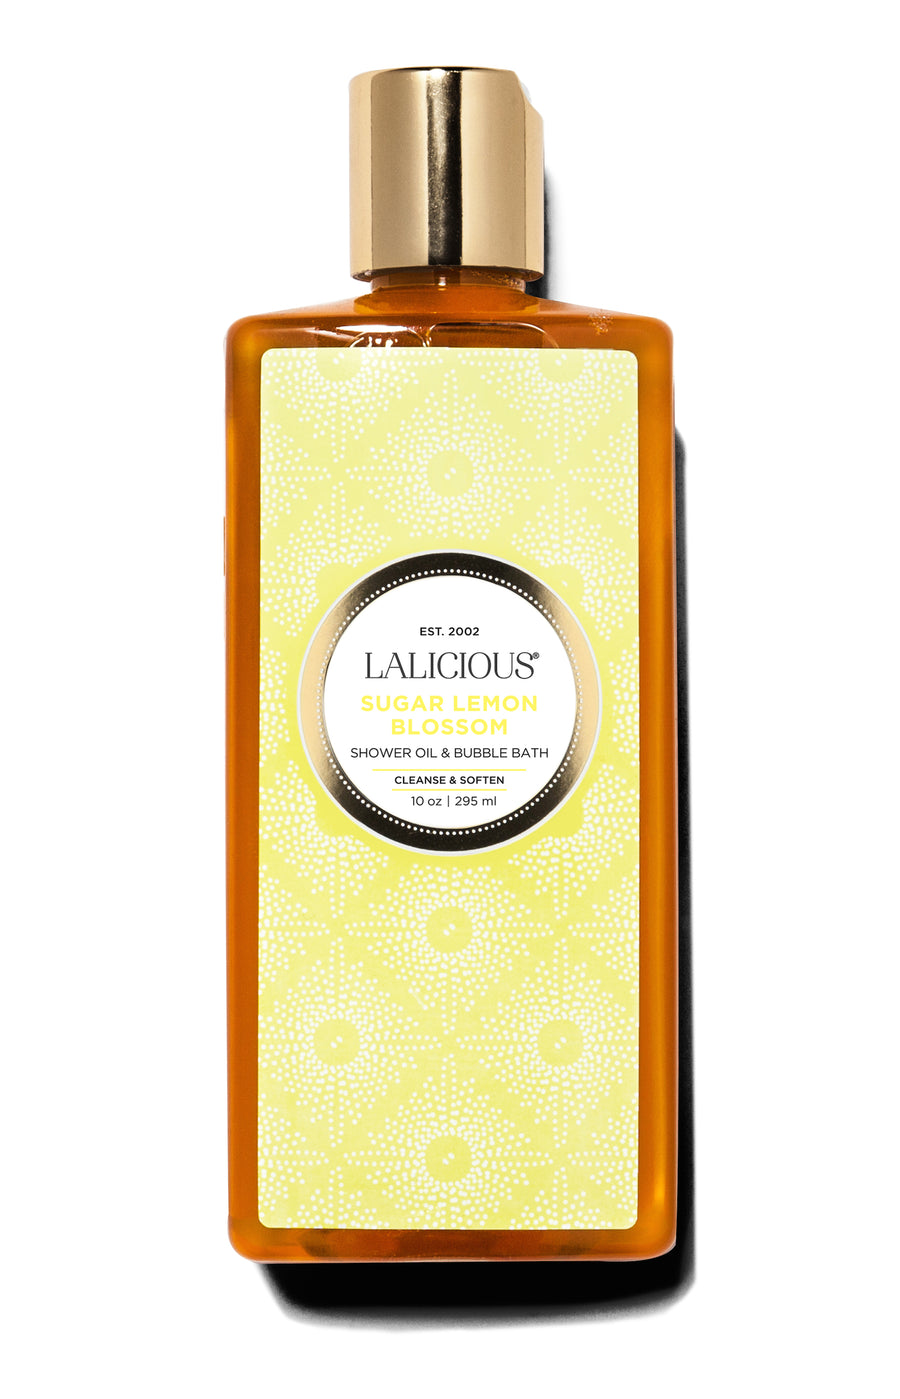 SUGAR LEMON BLOSSOM SHOWER OIL AND BUBBLE BATH - SkinGlow Shop -  Skin Care Vancouver, Skin Care Canada